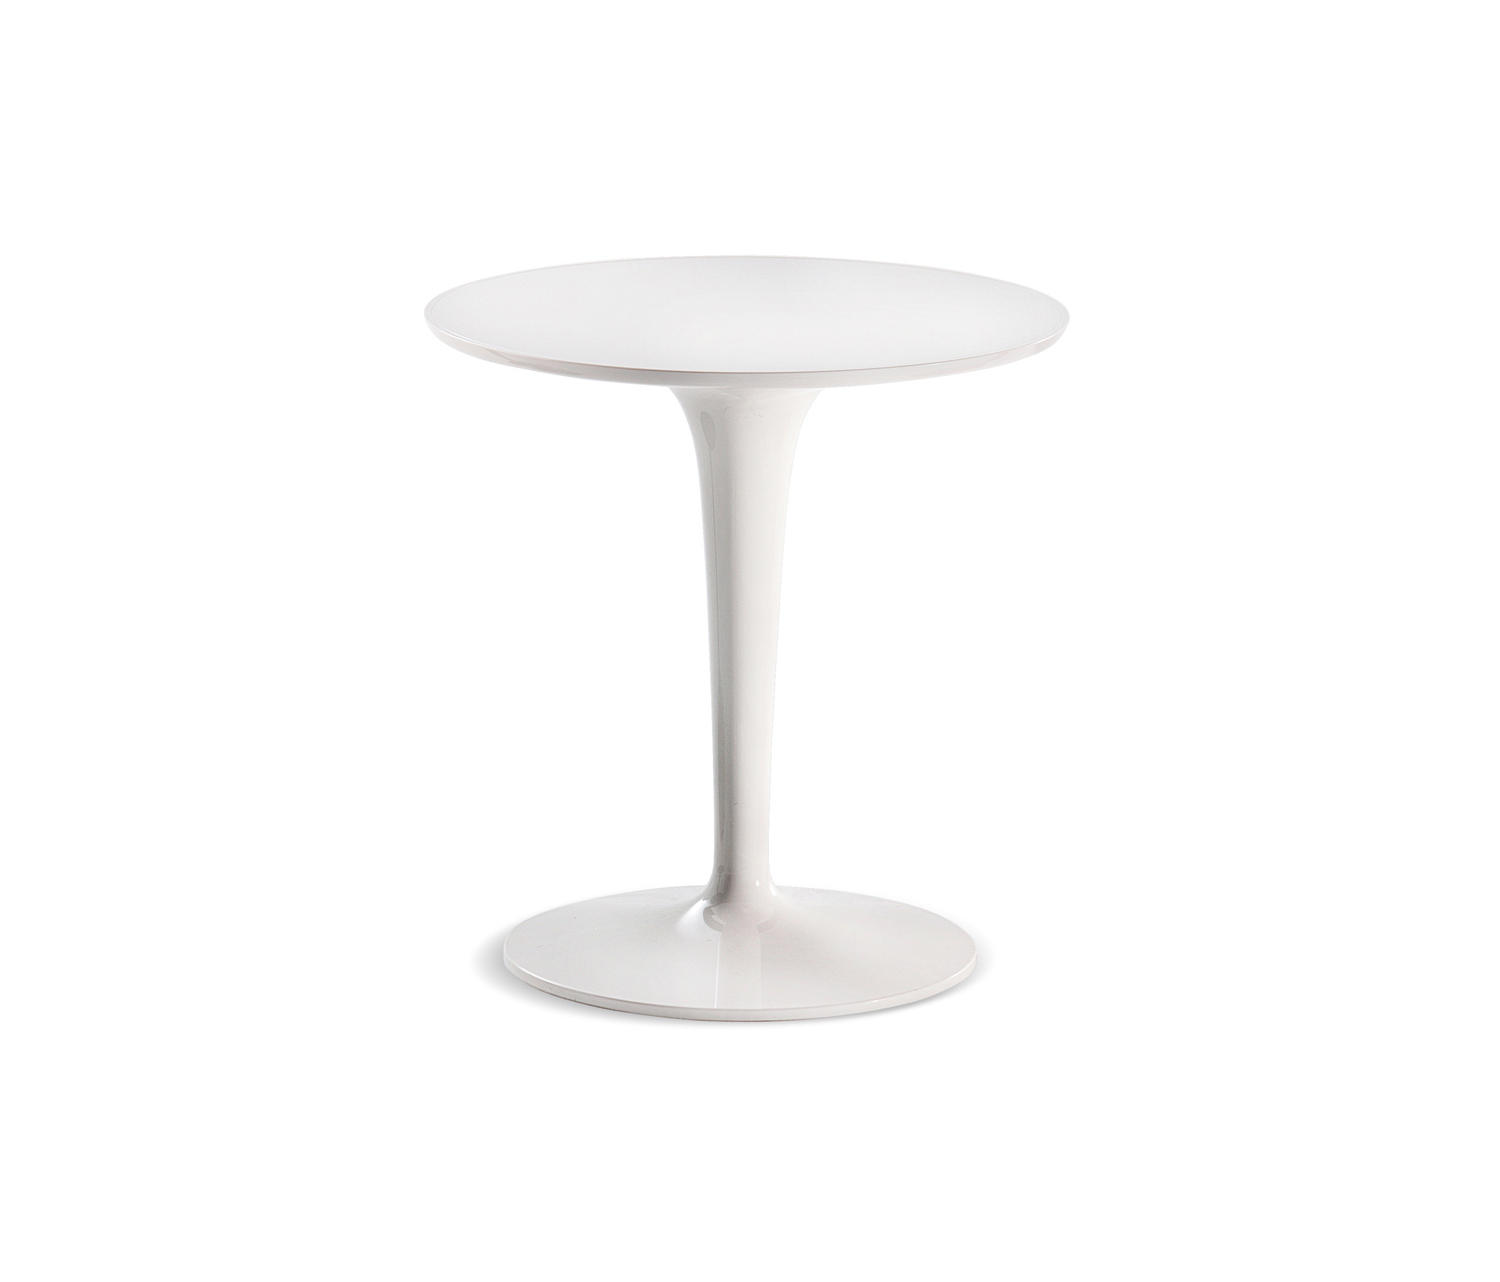 tip top mono  cafeteria tables from kartell  architonic - tip top mono by kartell  cafeteria tables